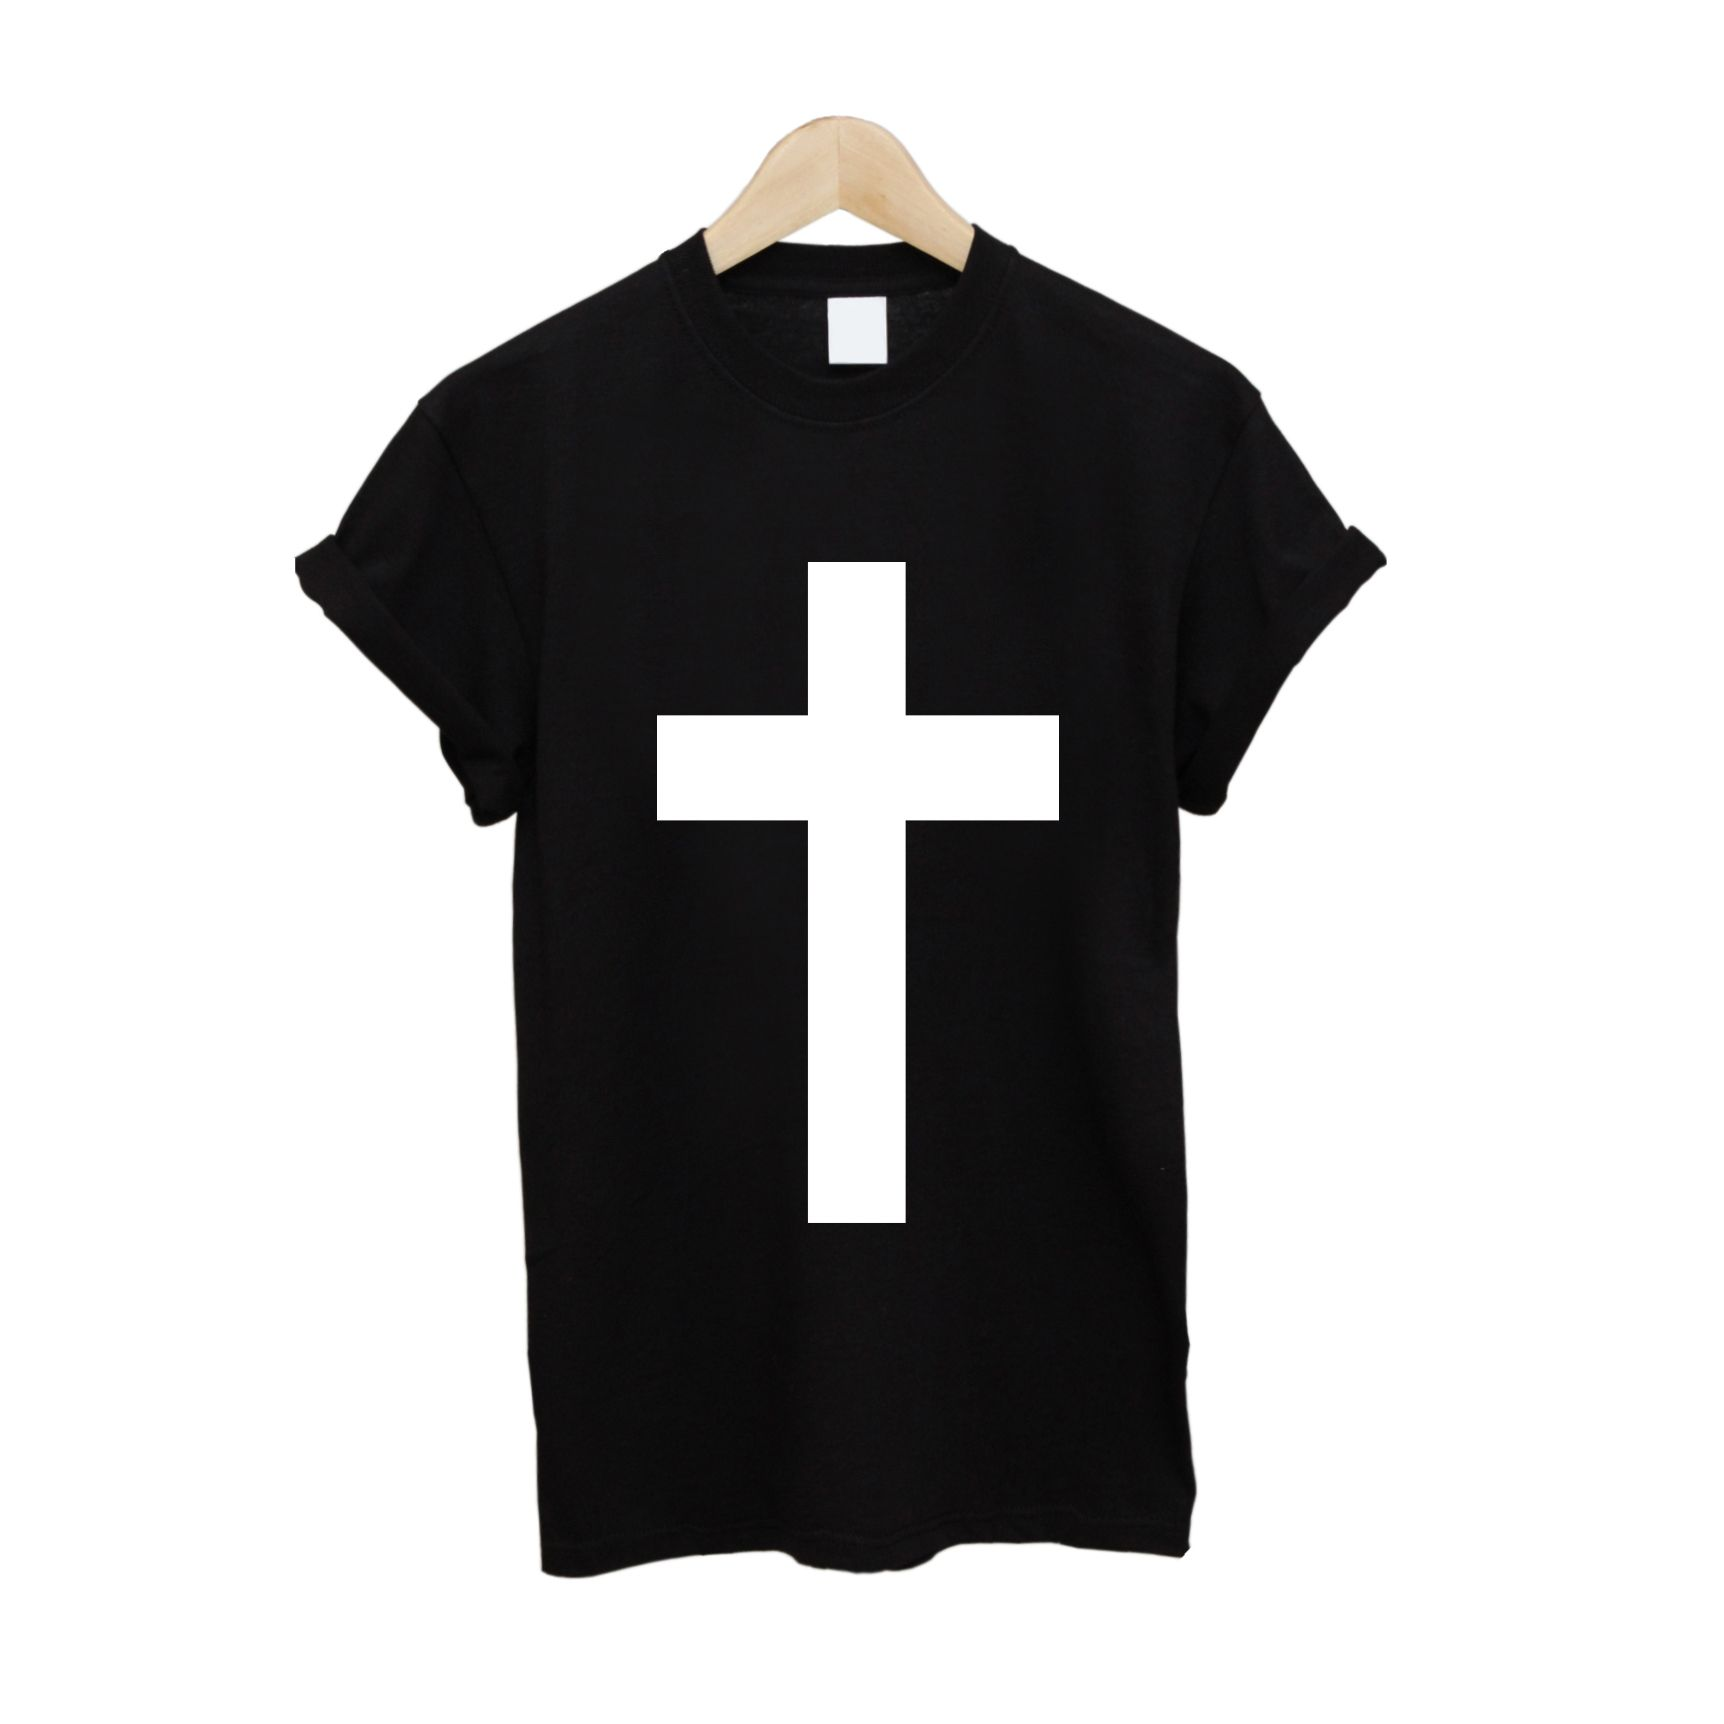 Christian cross t shirt 10 free uk delivery teeisland